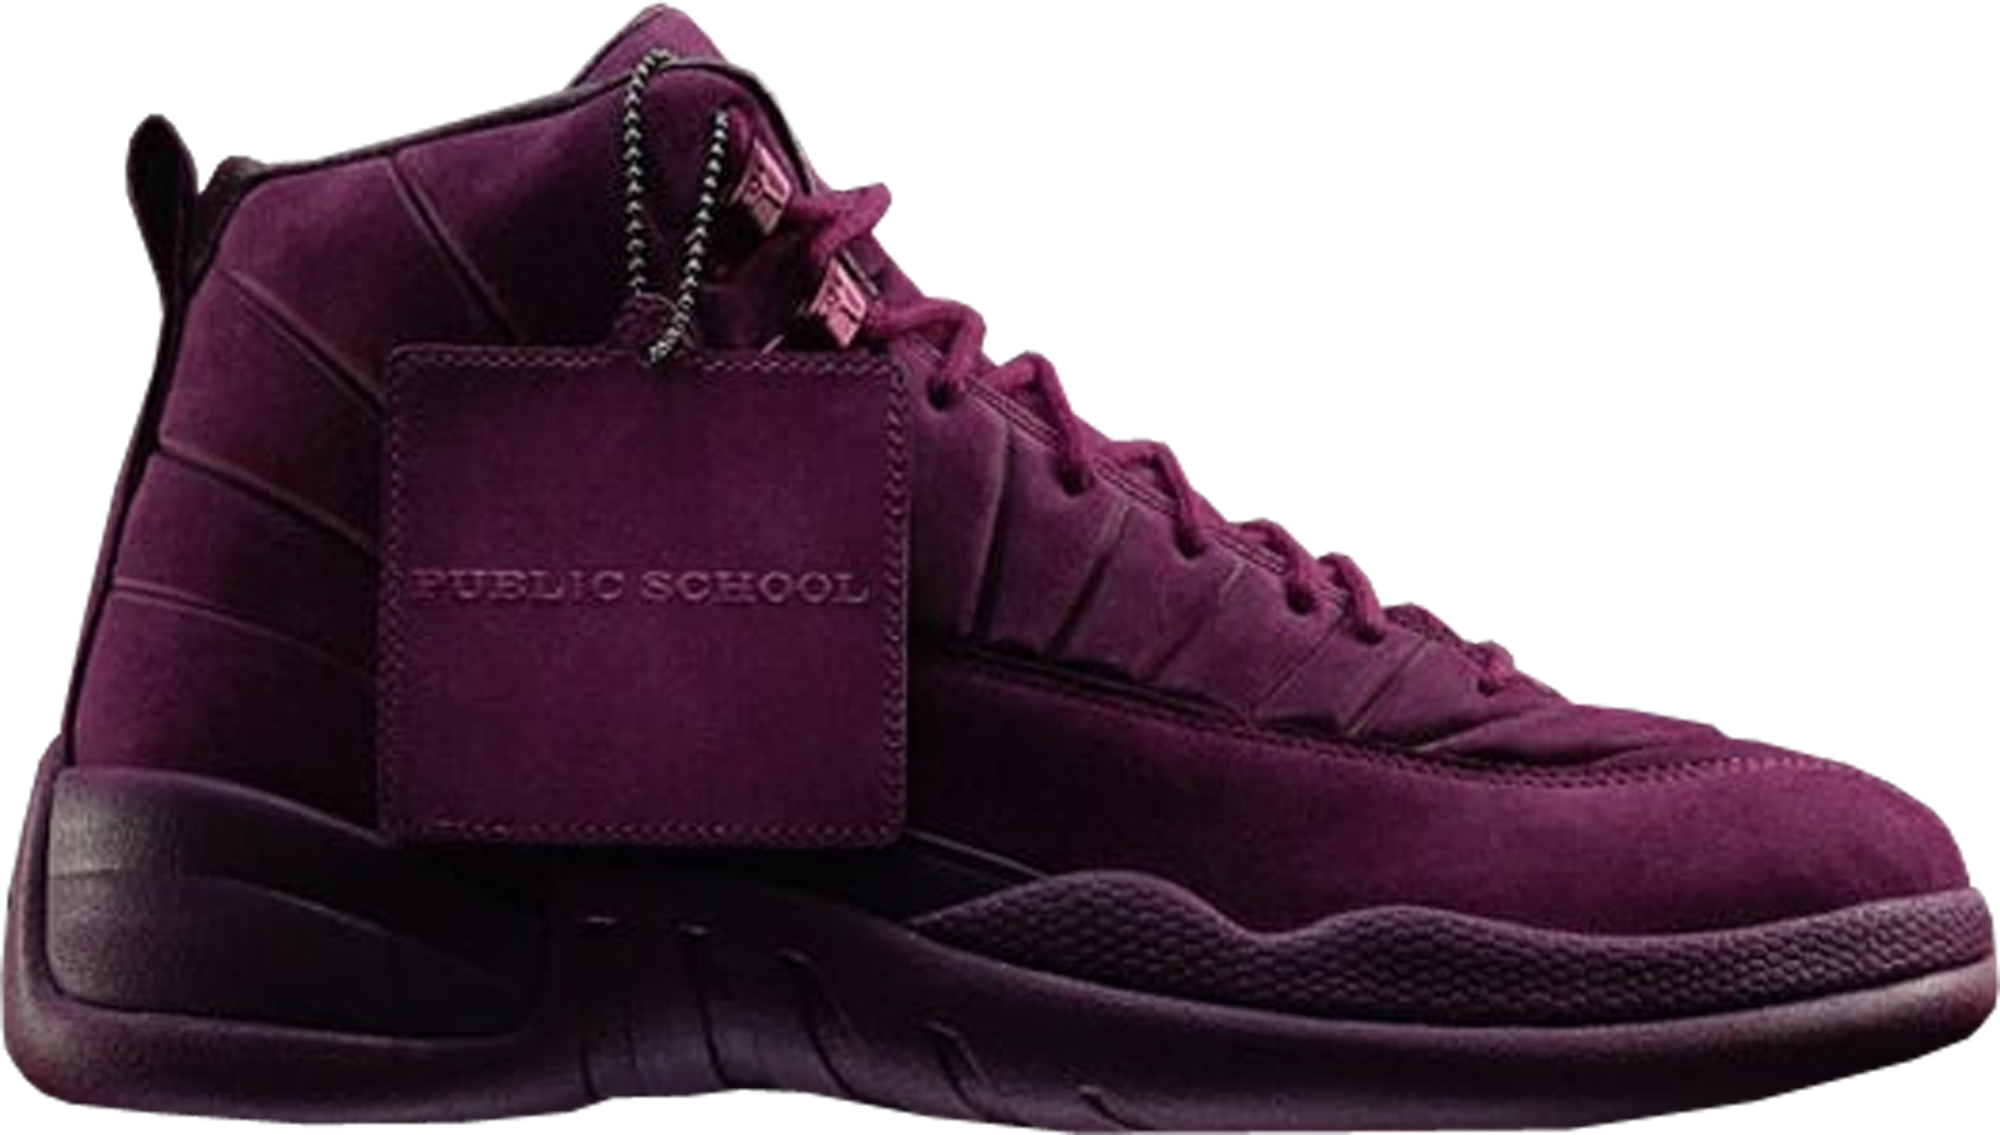 Public School x Air Jordan 12 Retro PSNY Bordeaux